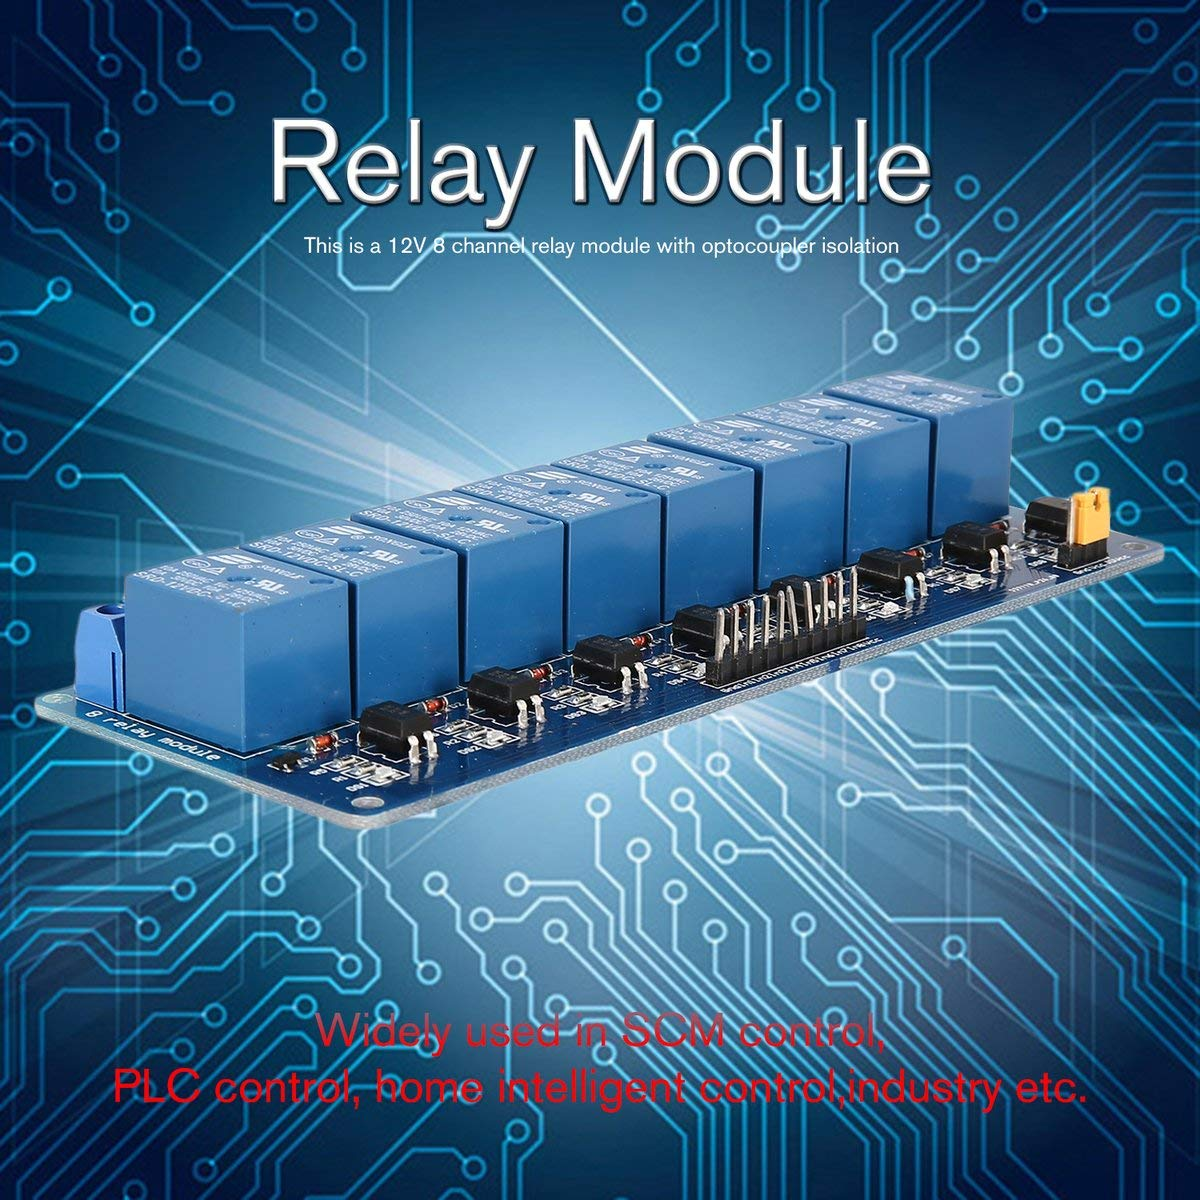 Gugutogo 12V 8 Channel Relay Module Interface Board Low Level Trigger Optocoupler for Arduino SCM PLC Smart Home Remote Control Switch